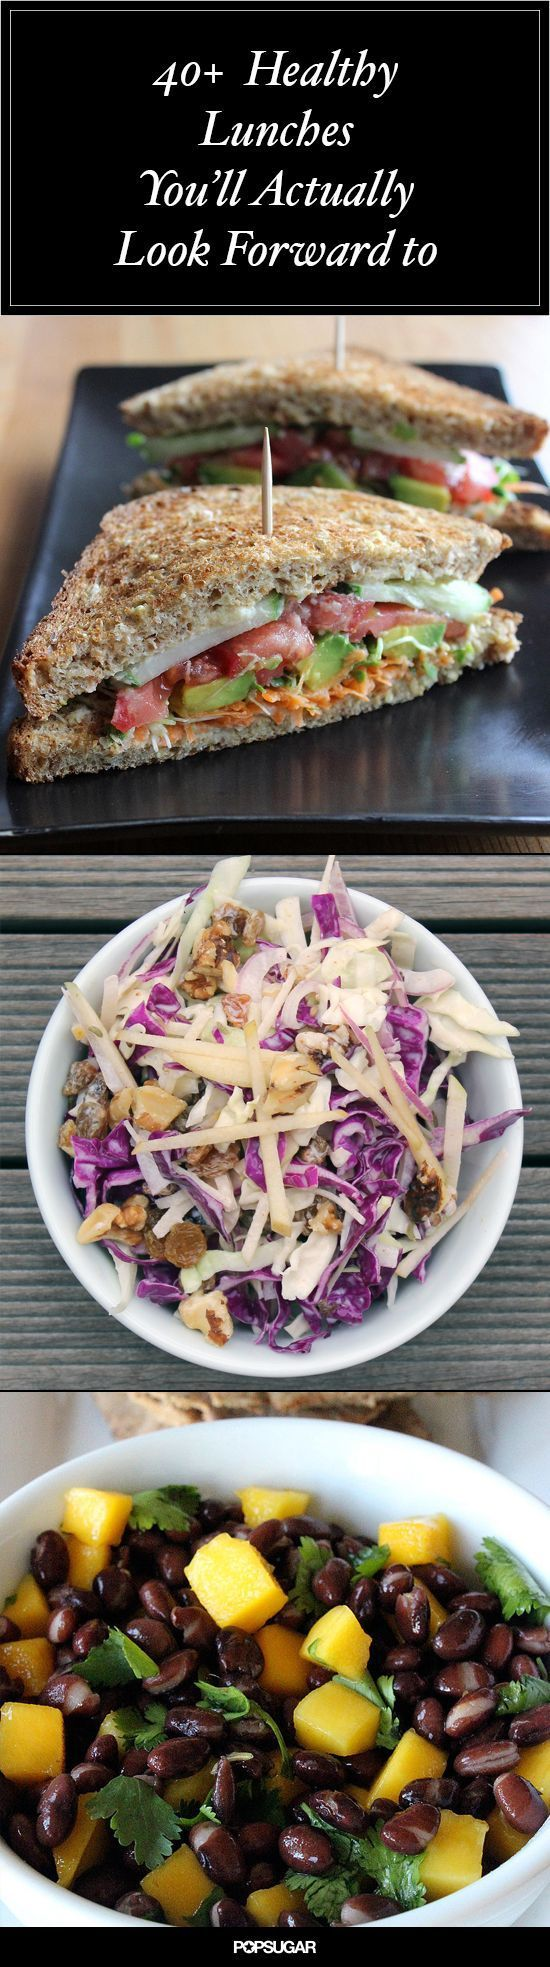 A healthy life: 60 Recipes to Help Shave Calories Off of Lunchtime...